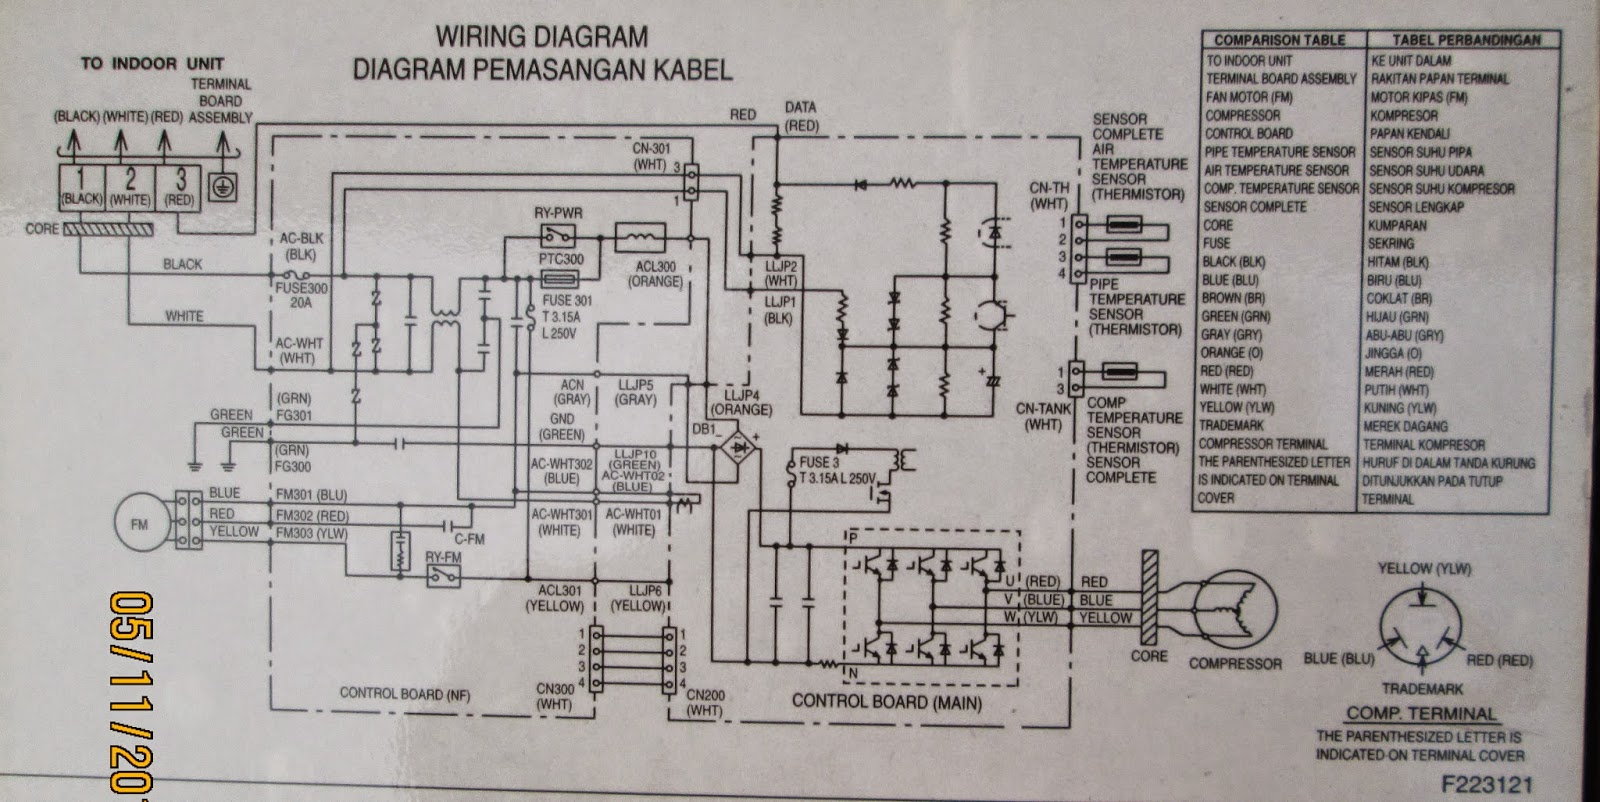 Wiring diagram ac sharp inverter wire center service ac kota serang baru diagram kelistrikan ac split rh service ac ksb blogspot com 12v inverter circuit diagram grid tie power inverter wiring diagram asfbconference2016 Choice Image